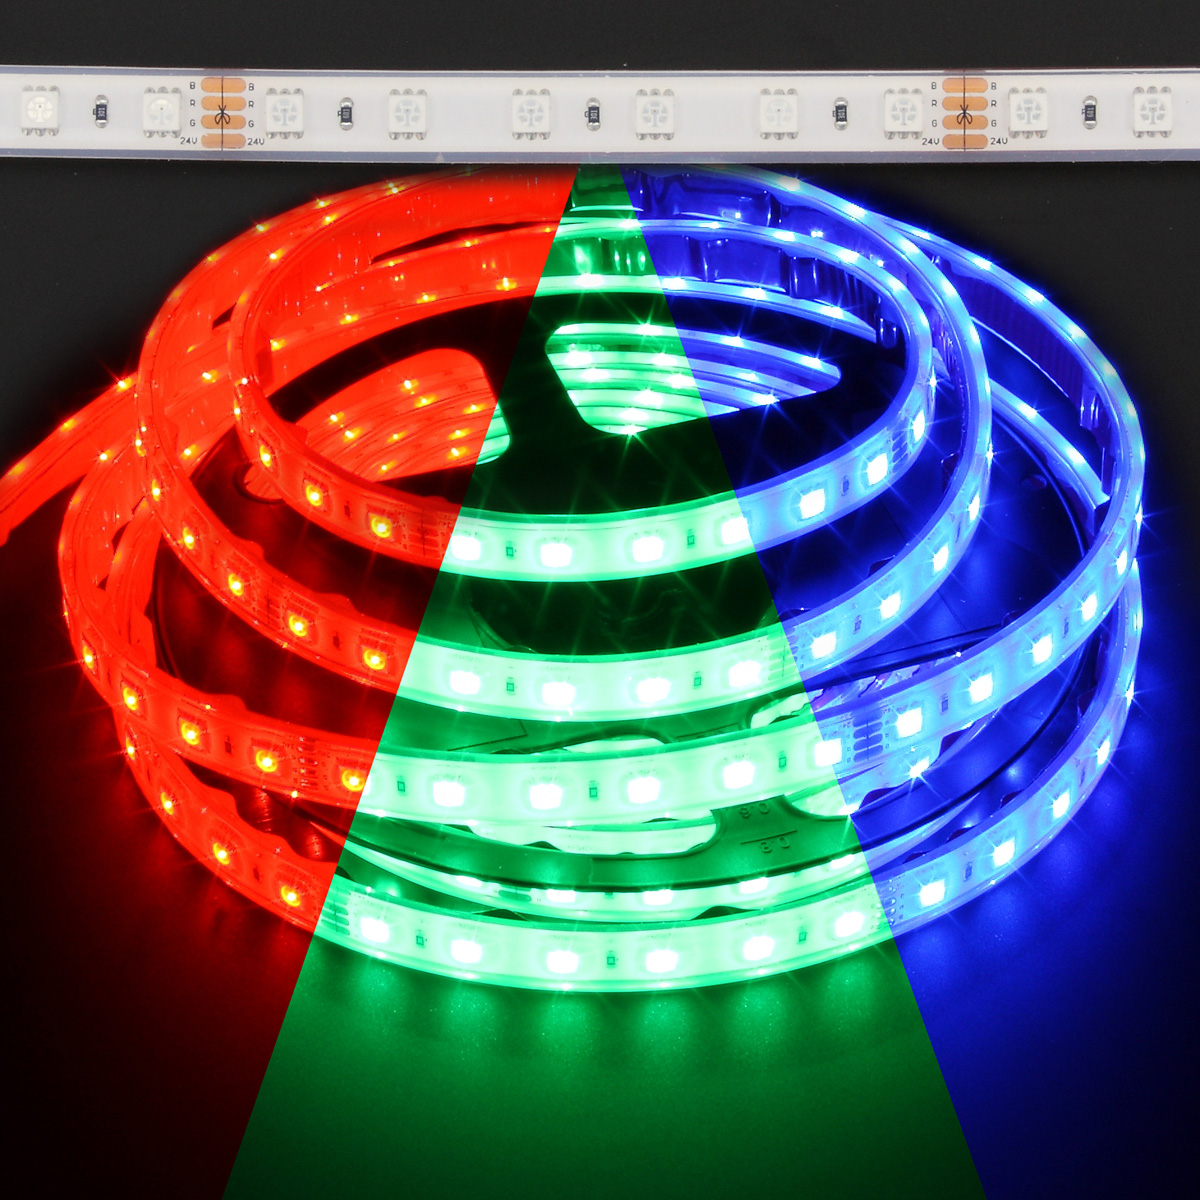 Color Changing Led Light Strips: Waterproof Color Changing RGB 5050 72W LED Strip